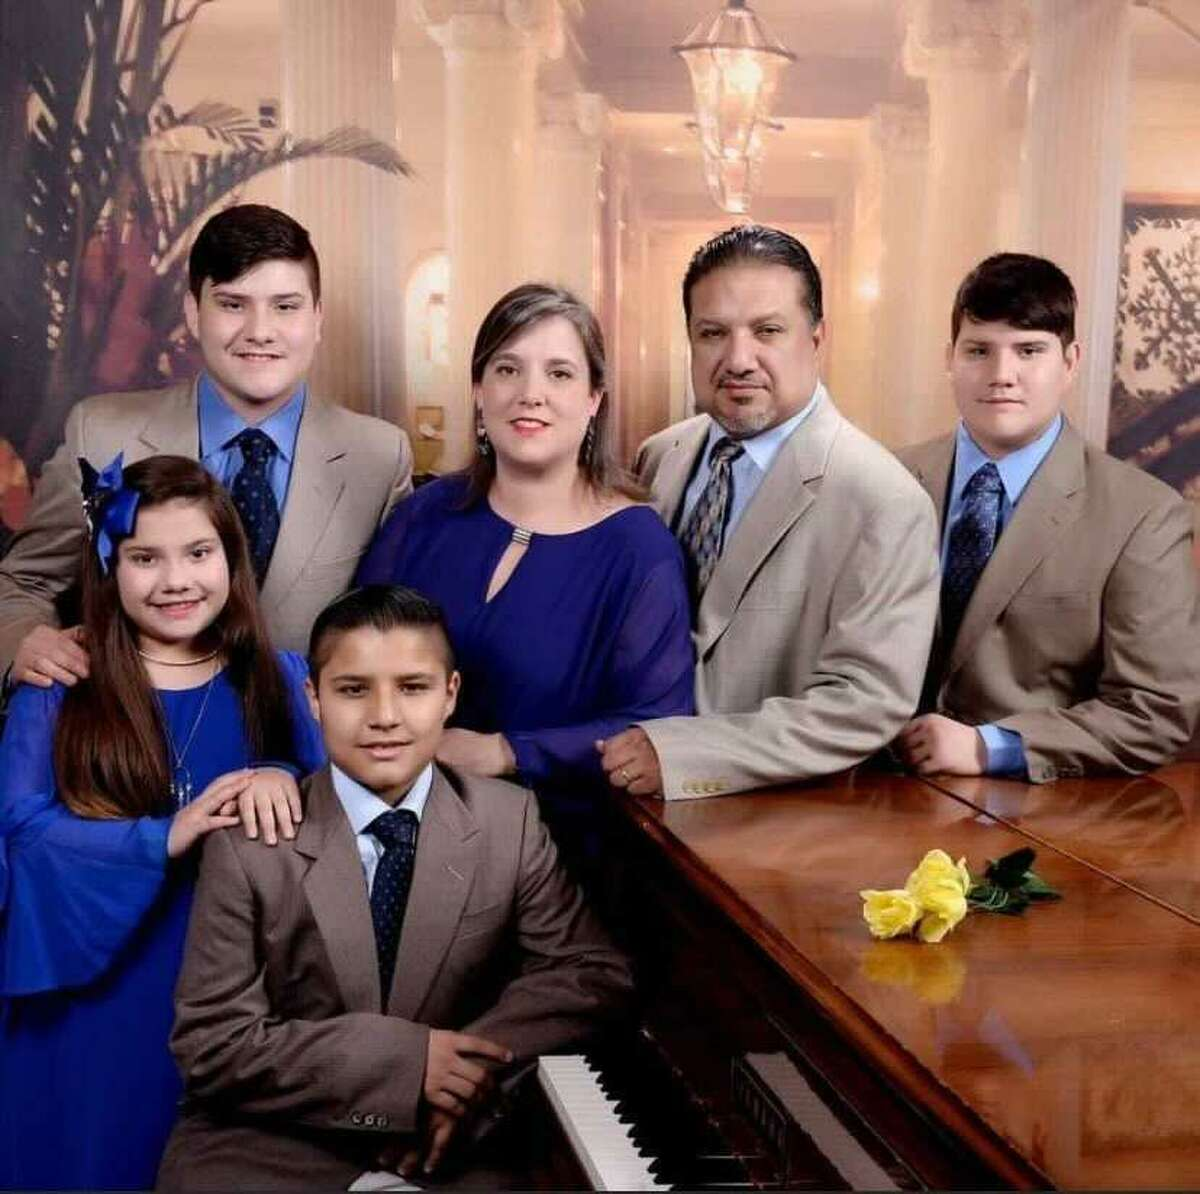 Lydia and Lawrence Rodriguez of La Marque, Texas both recently passed away from a battle with COVID-19. They are survived by their four children.